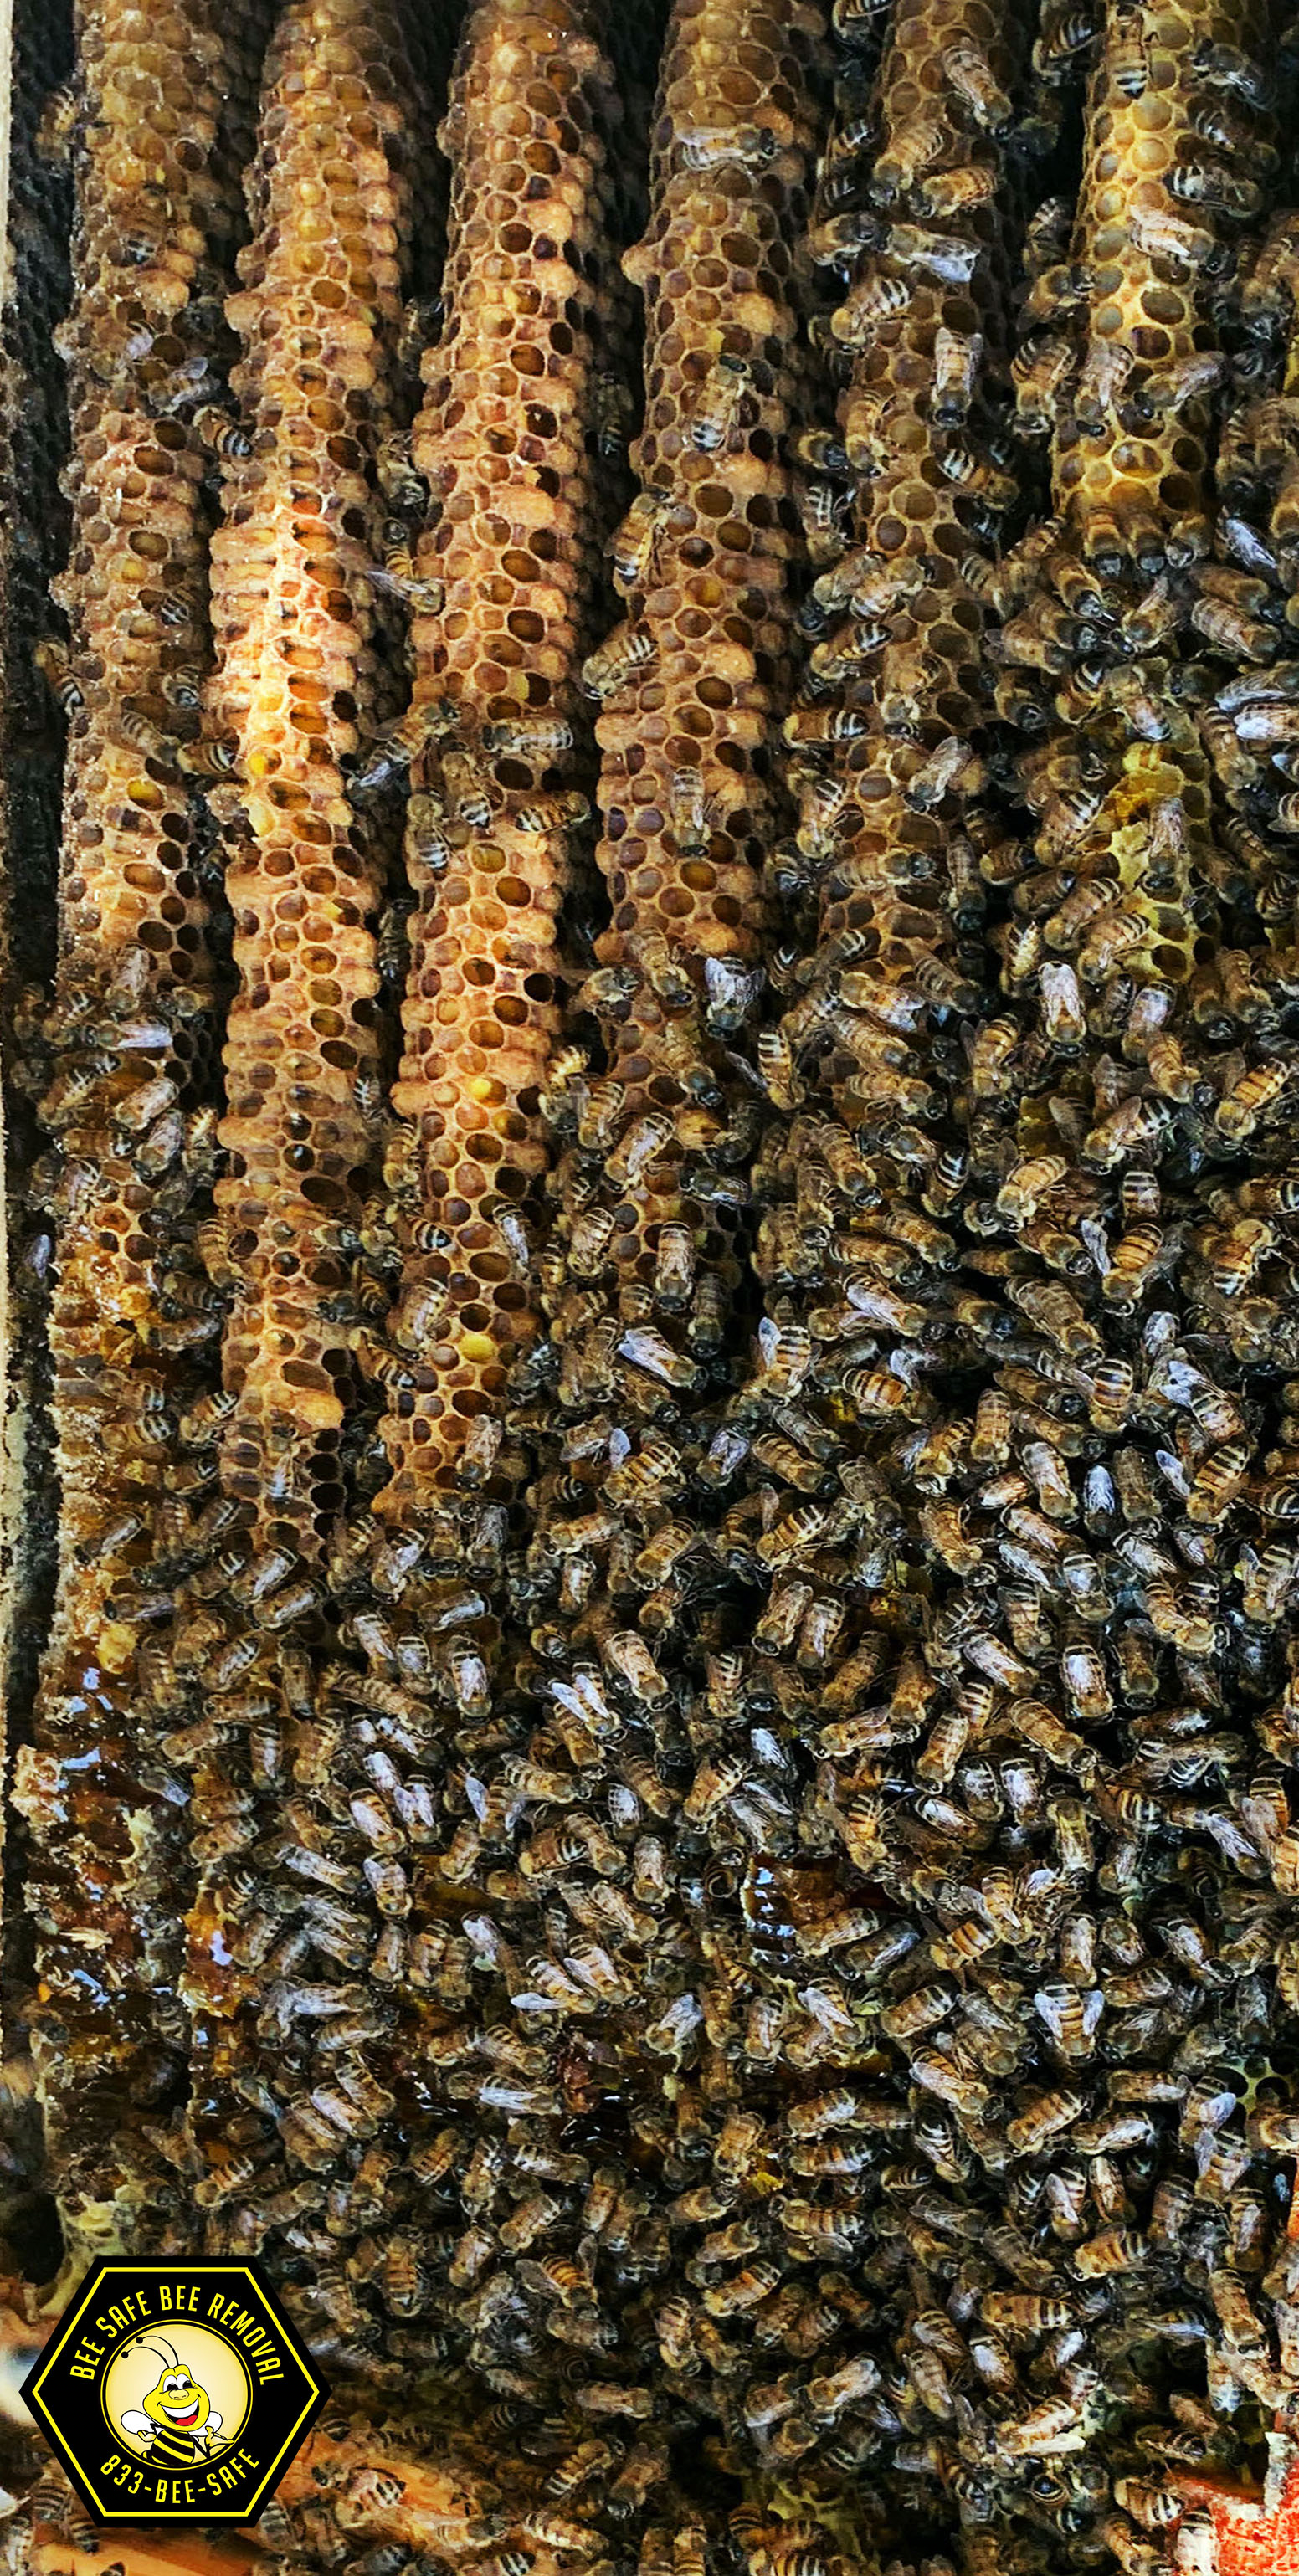 Giant beehive and wasp removal in Plano, Texas